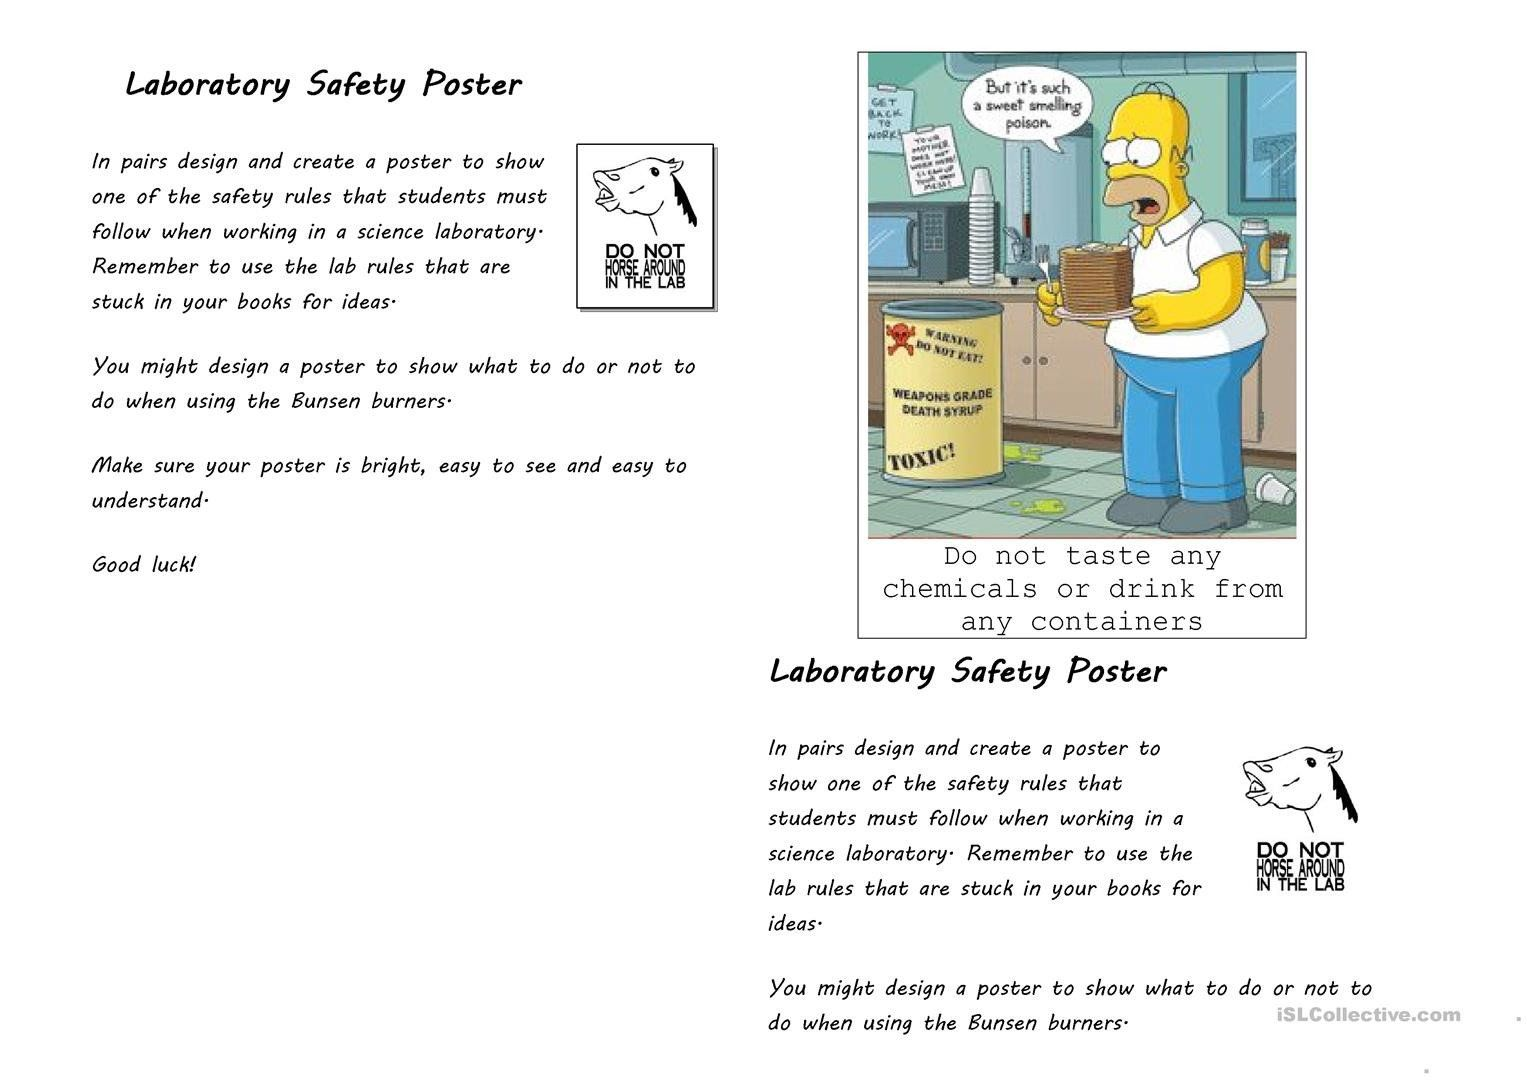 Lab Safety Worksheet Answers Laboratory Safety Poster English Esl Worksheets For In 2020 Kids Worksheets Printables Lab Safety Free Math Worksheets